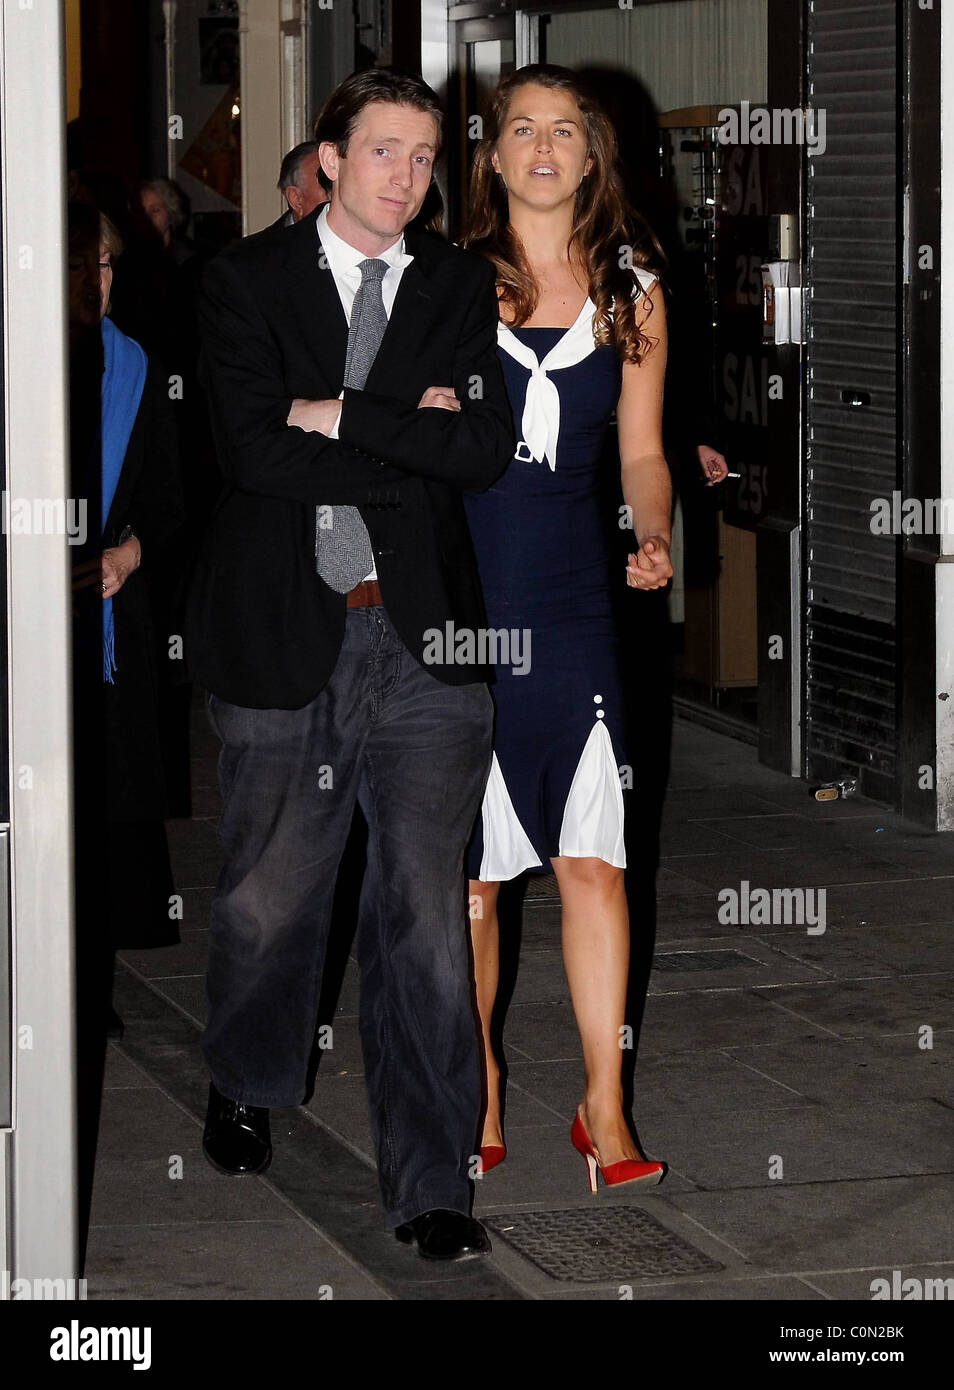 Trevor White and mystery woman leaving Vanessa Redgrave's performance of 'The Year of Magical Thinking' - Stock Image